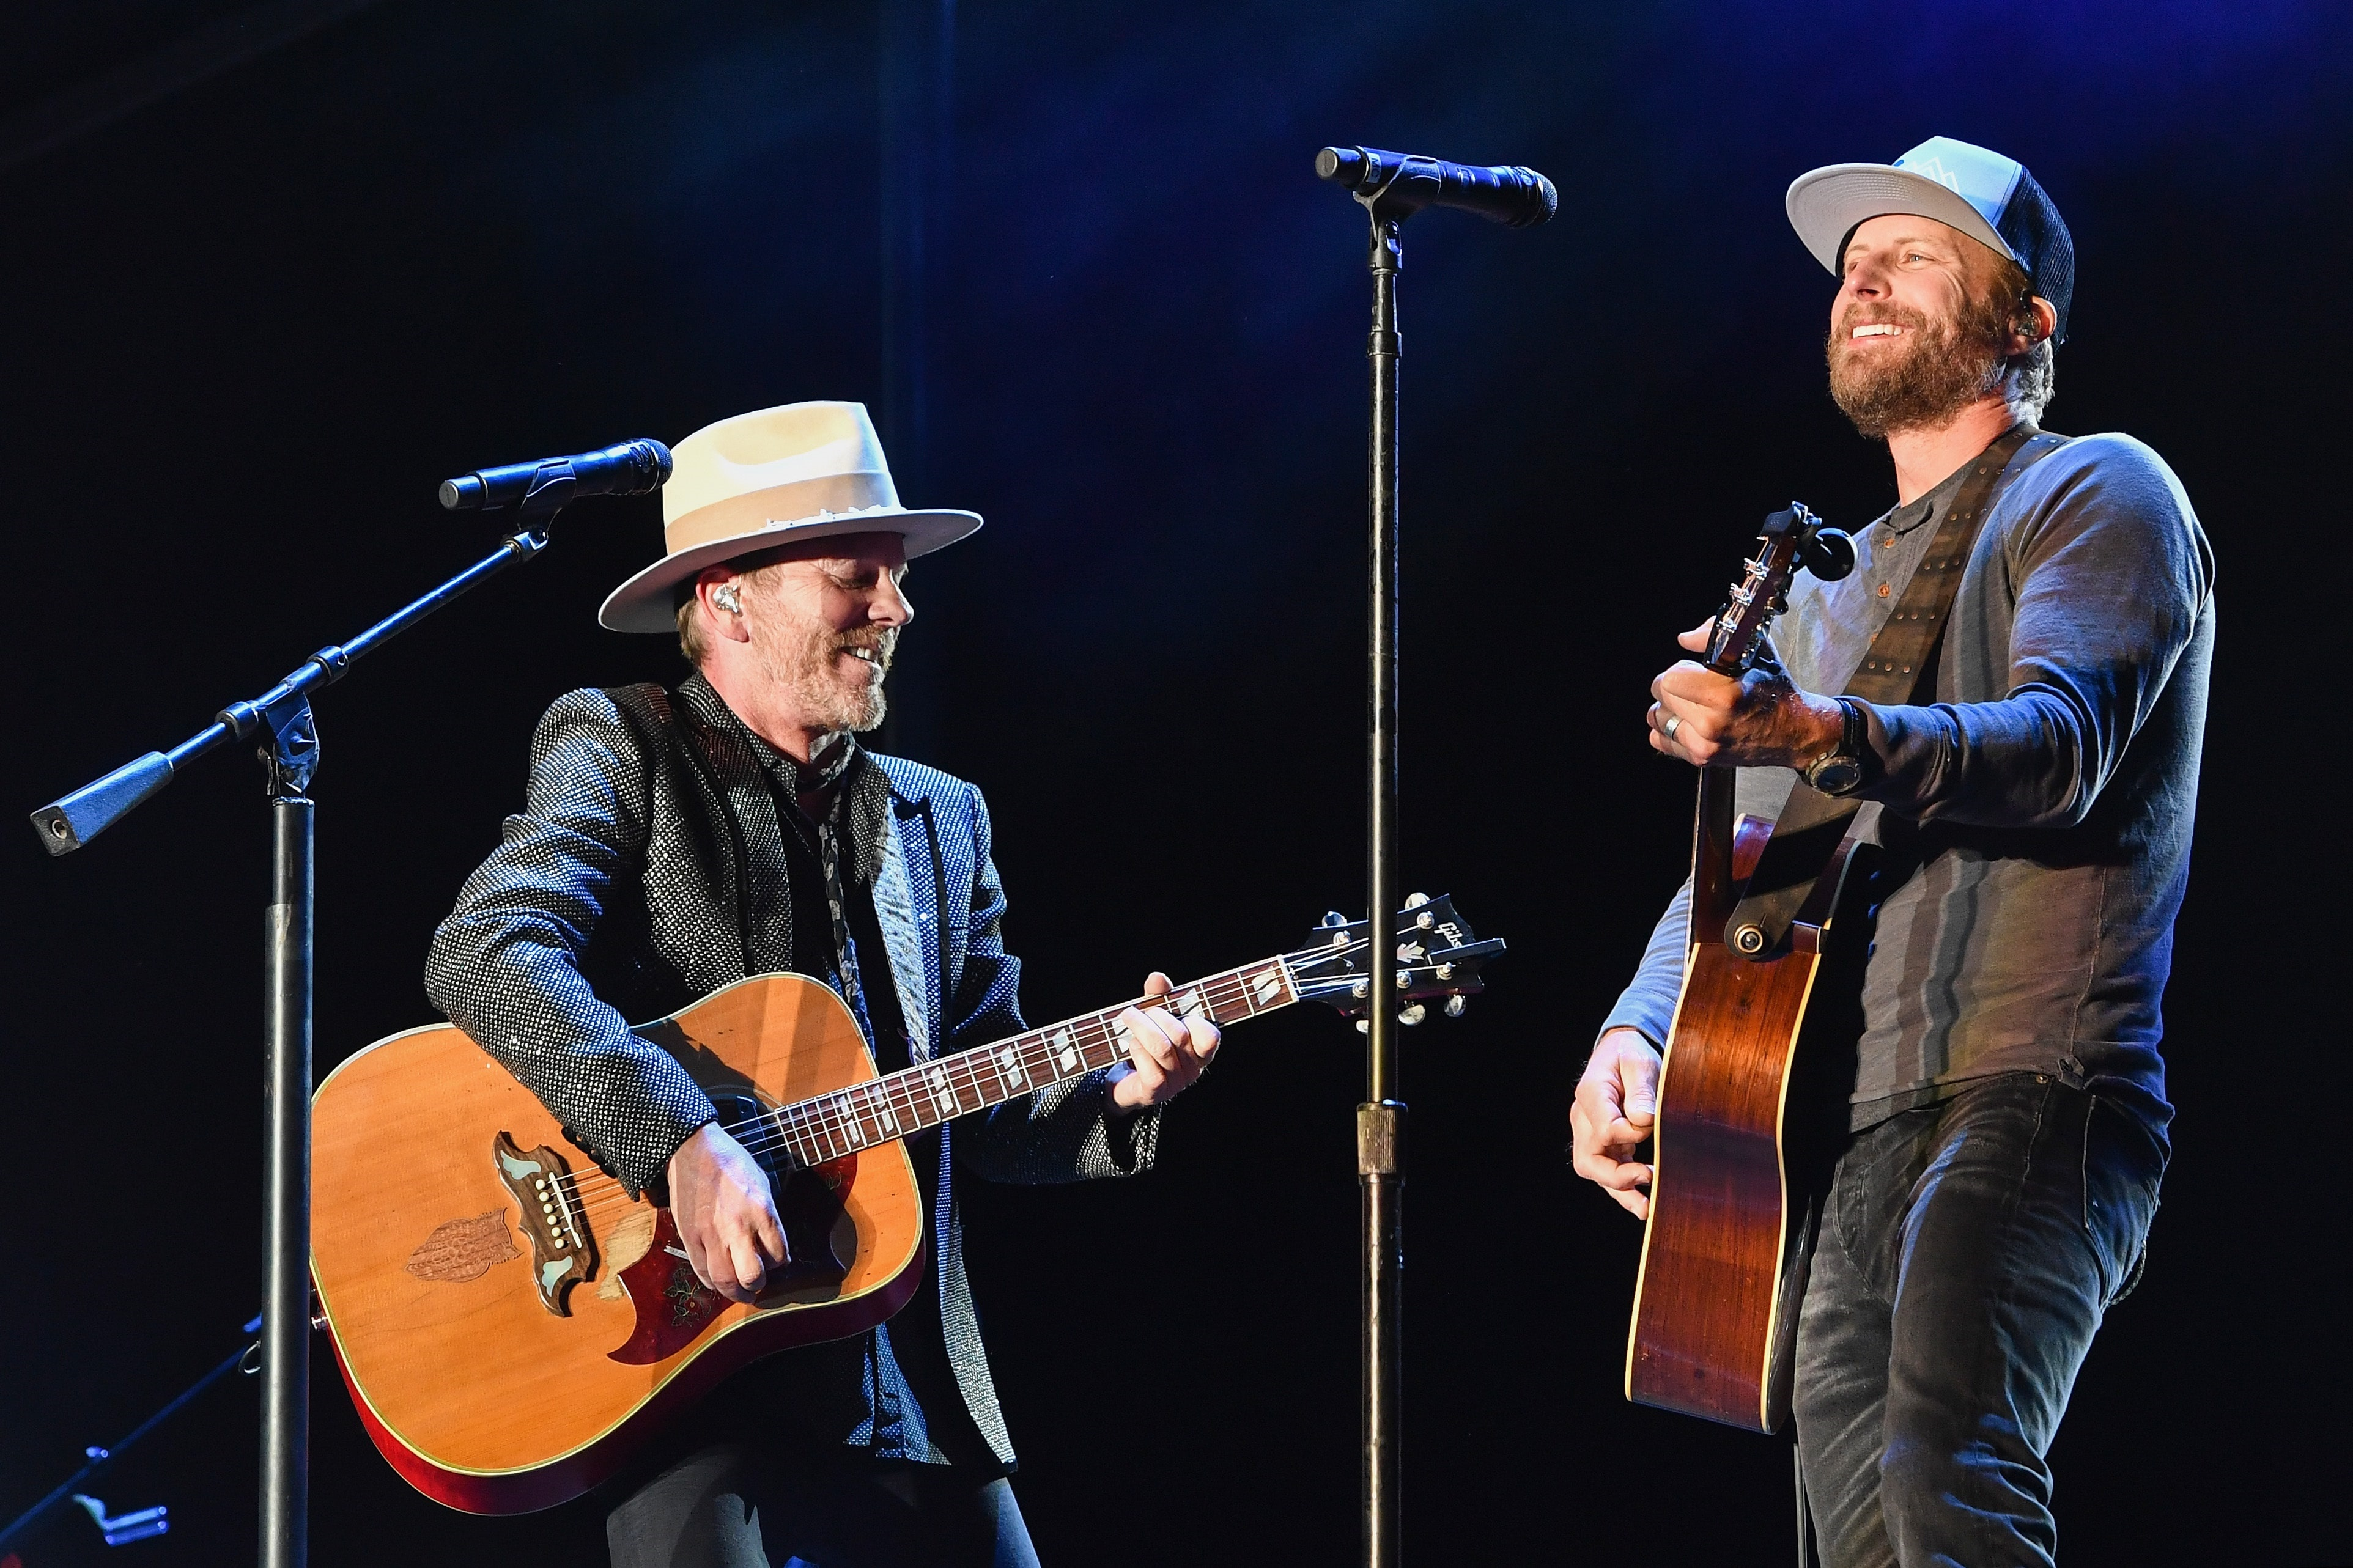 BUENA VISTA, CO - SEPTEMBER 01: Kiefer Sutherland (L) and Dierks Bentley perform on Day 2 of Seven Peaks Festival on September 1, 2018 in Buena Vista, Colorado. (Photo by Erika Goldring/Getty Images)